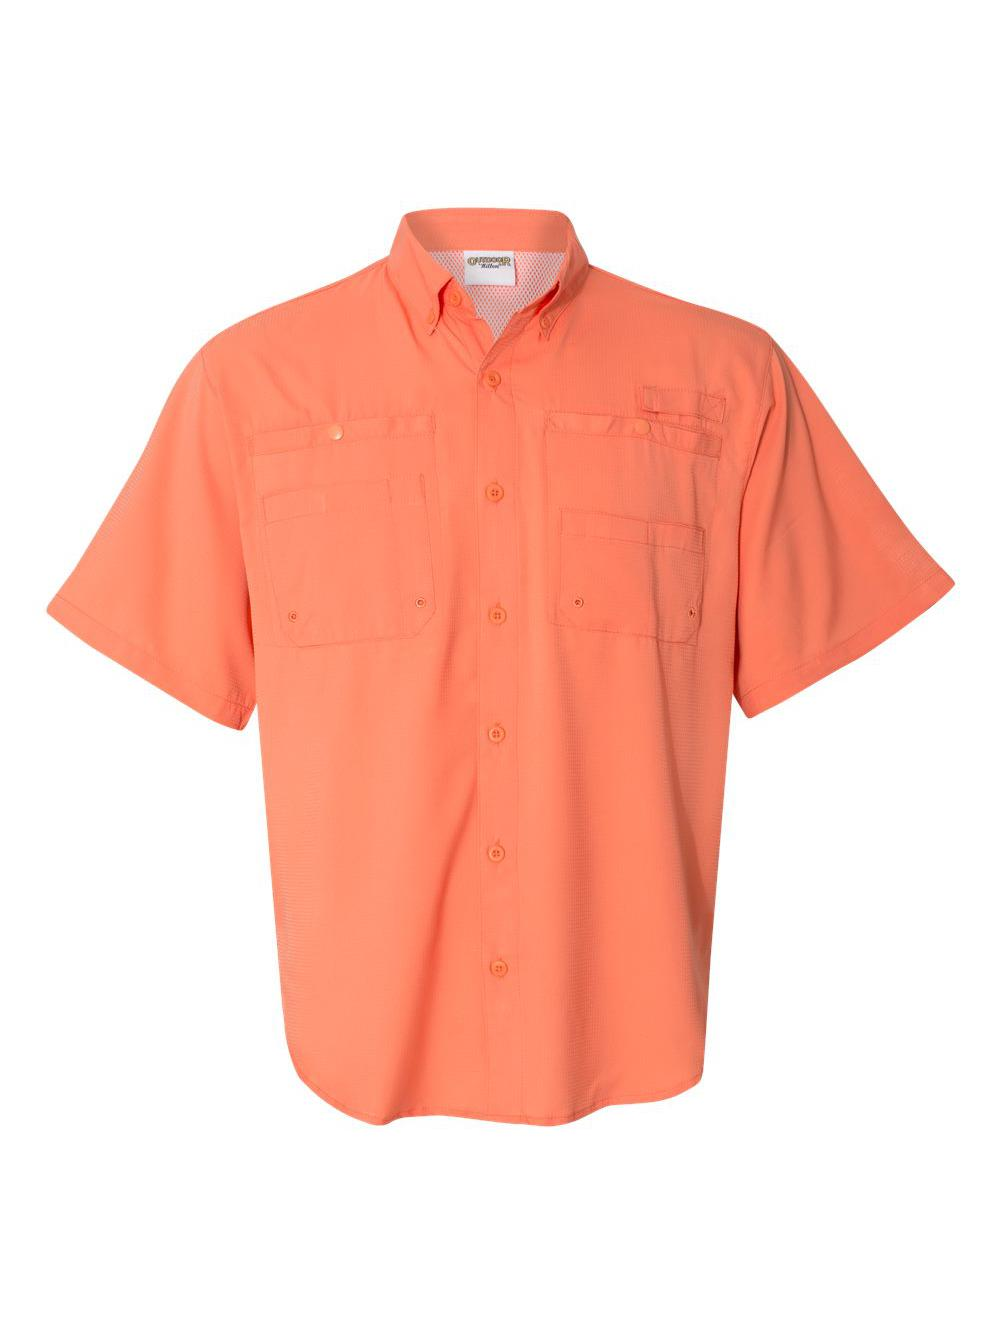 Hilton-Baja-Short-Sleeve-Fishing-Shirt-ZP2297 thumbnail 3